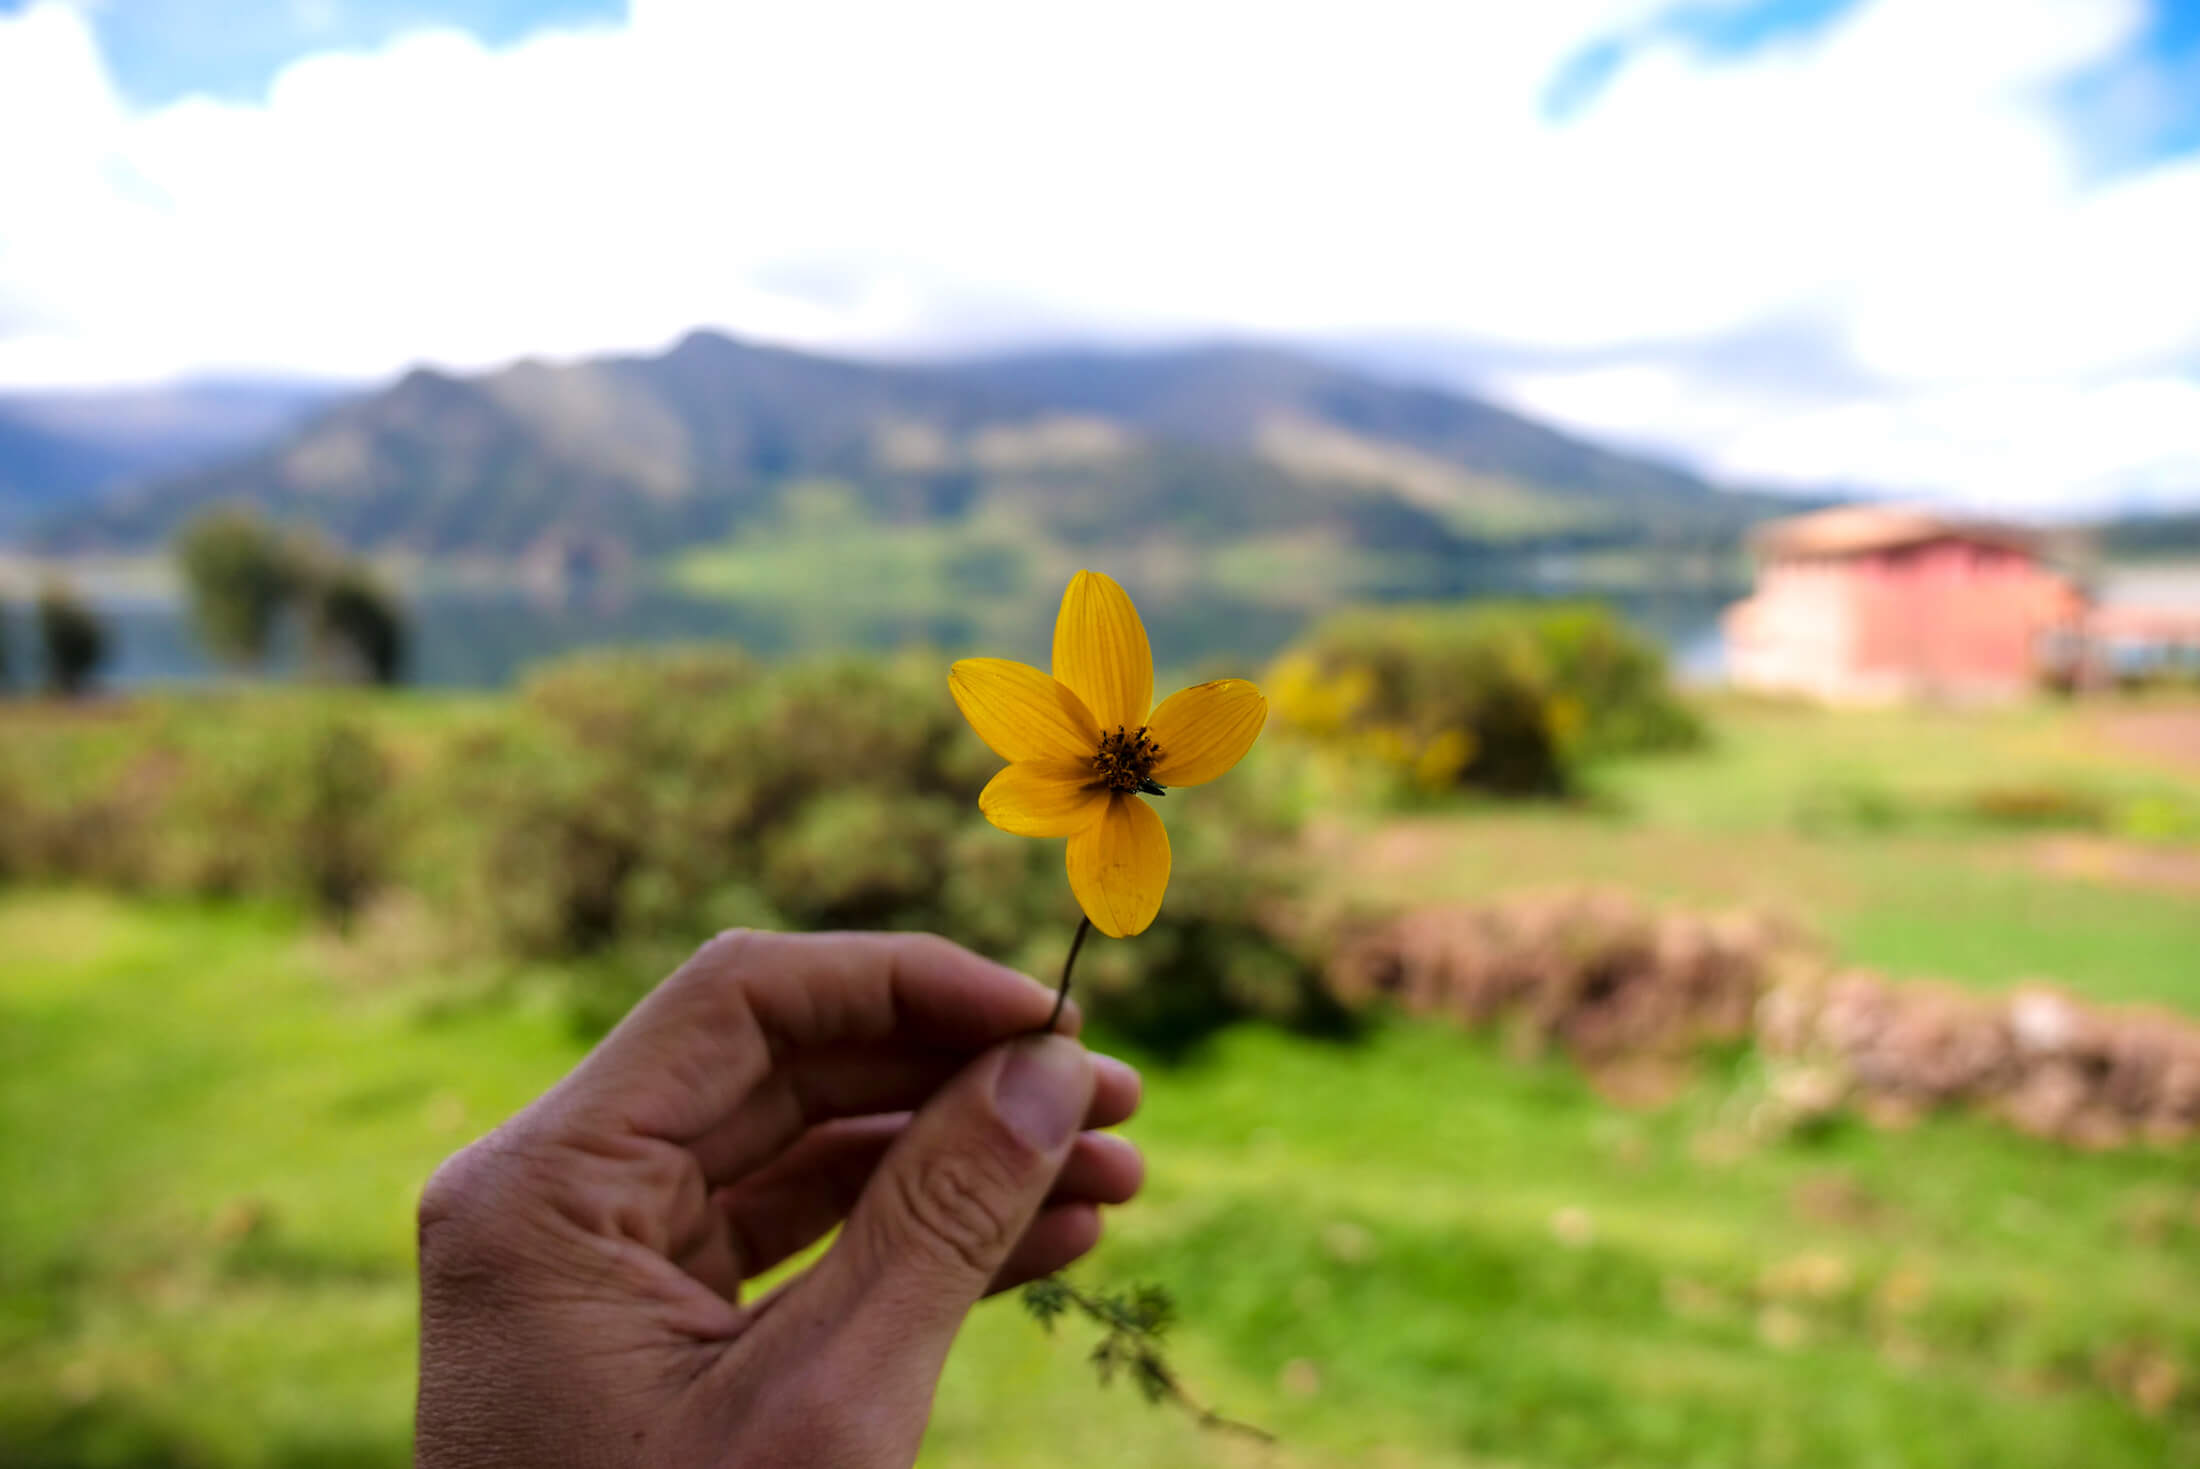 A flower grows in the Clean mountain air, the Andes Mountain areas of Peru.